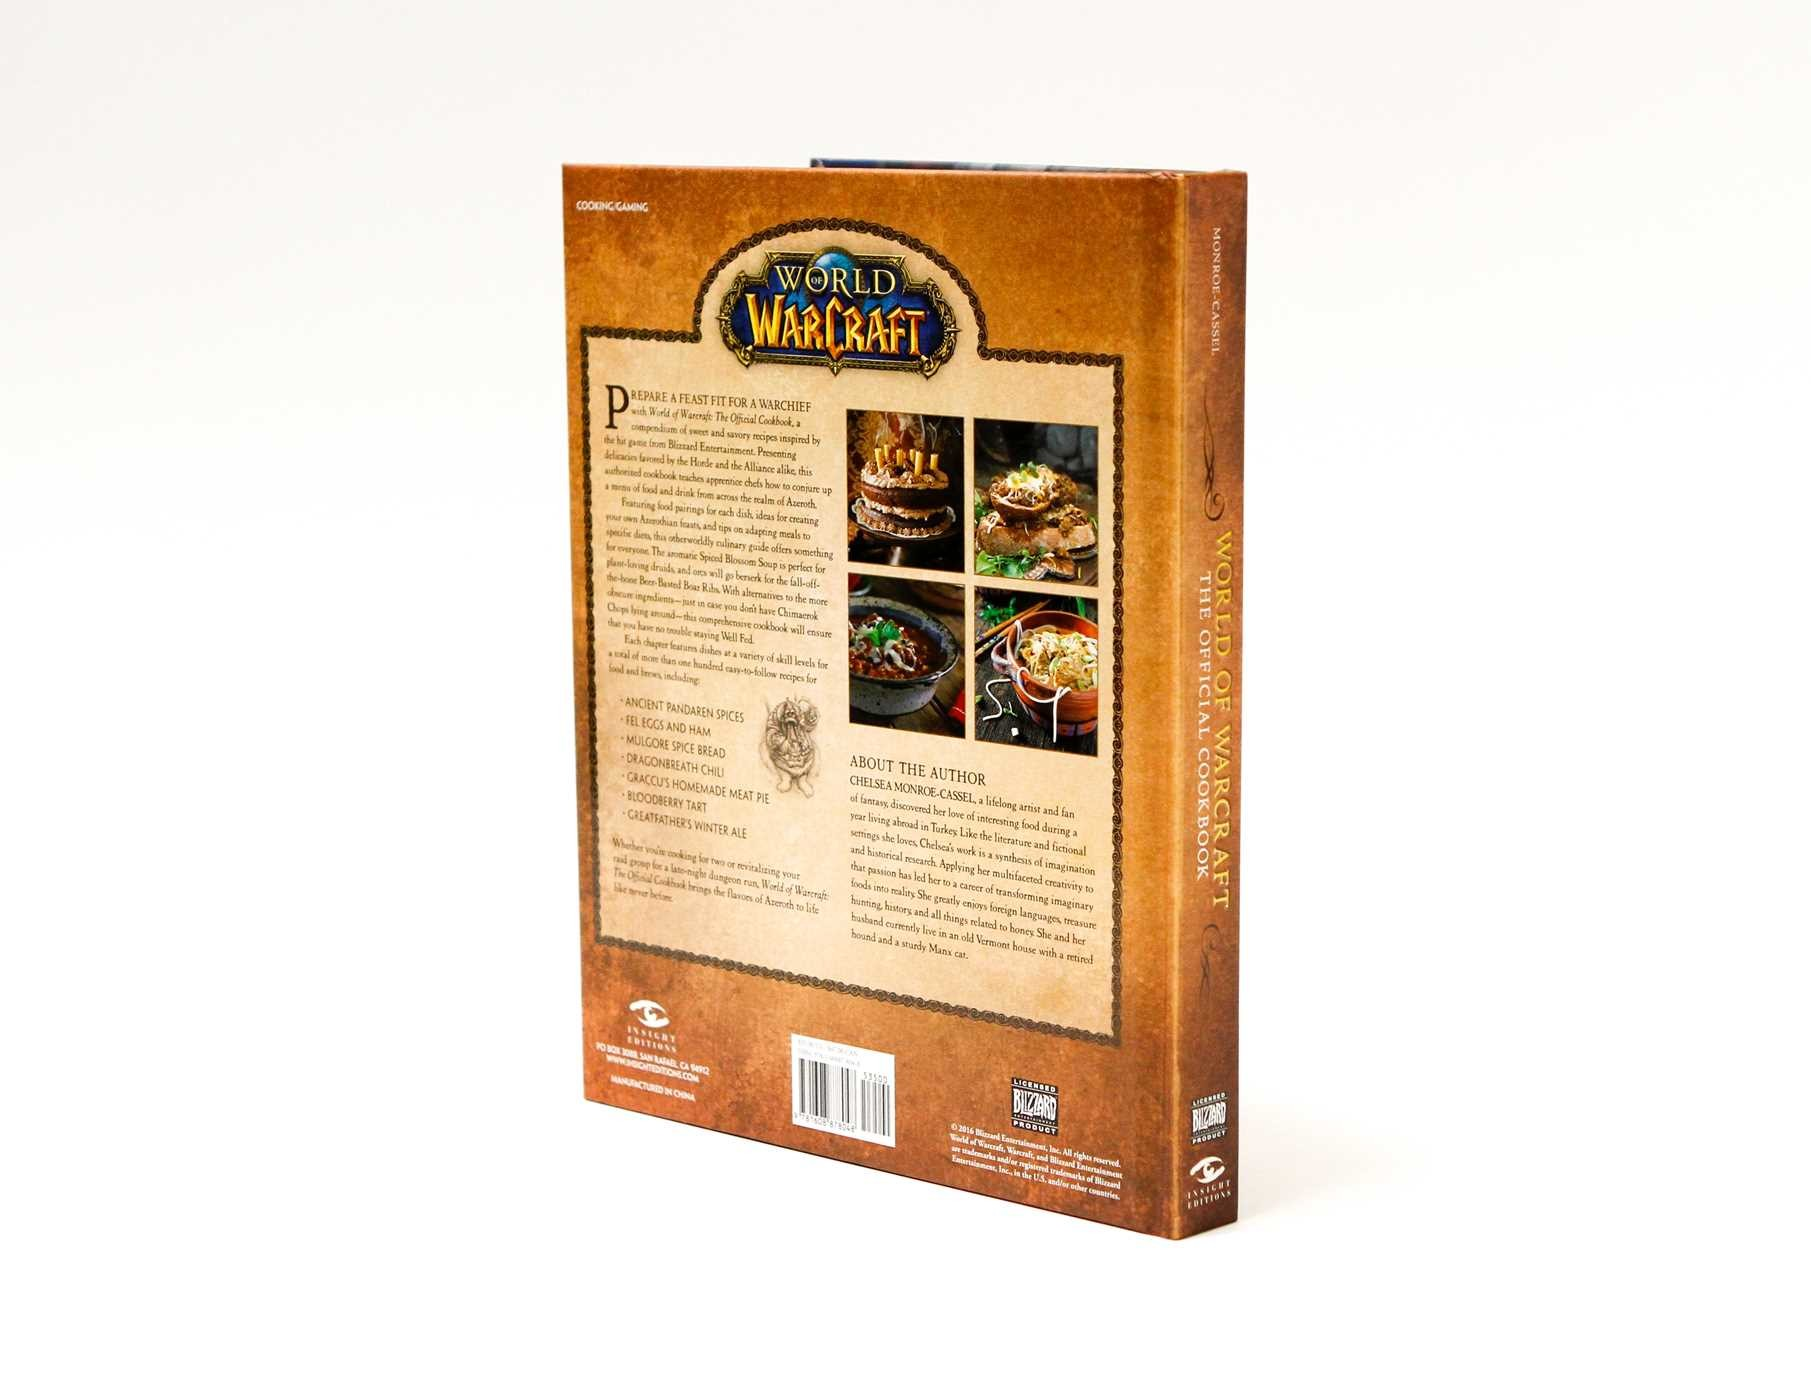 World of warcraft the official cookbook 9781608878048.in08